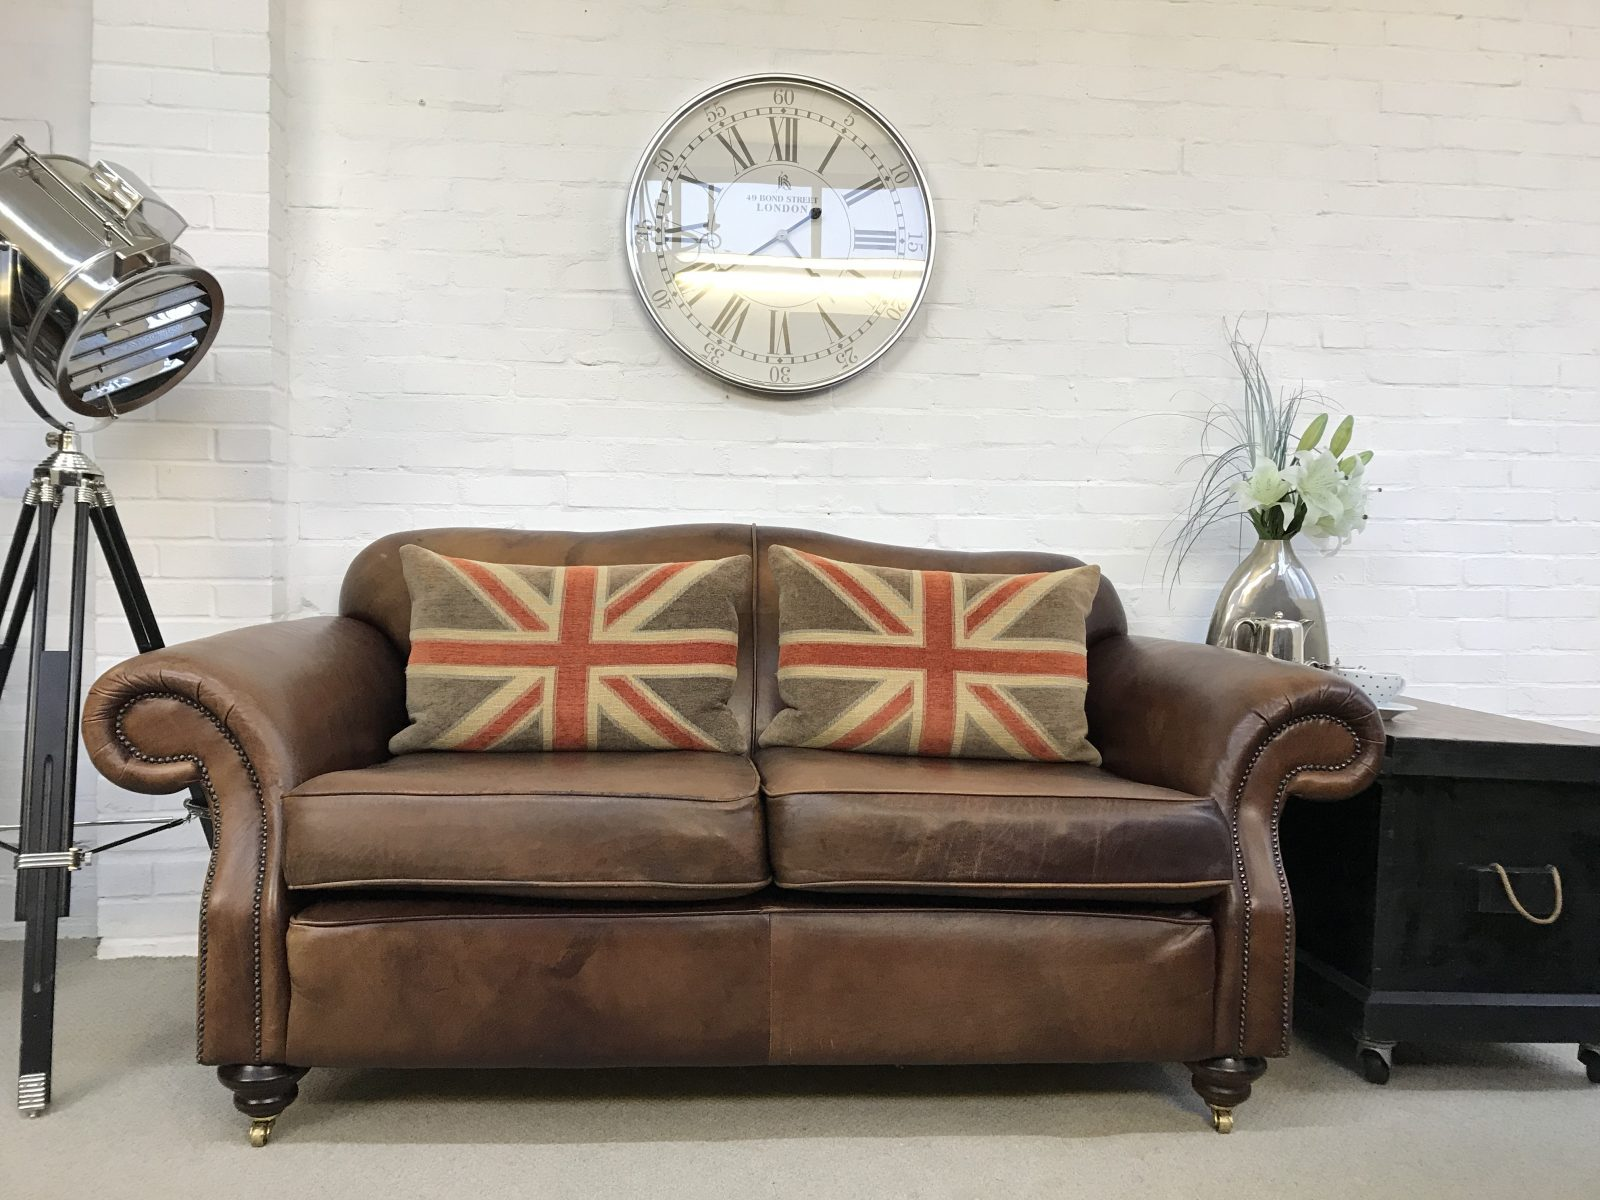 Laura Ashley 2/3 Seater Sofa…..SOLD.